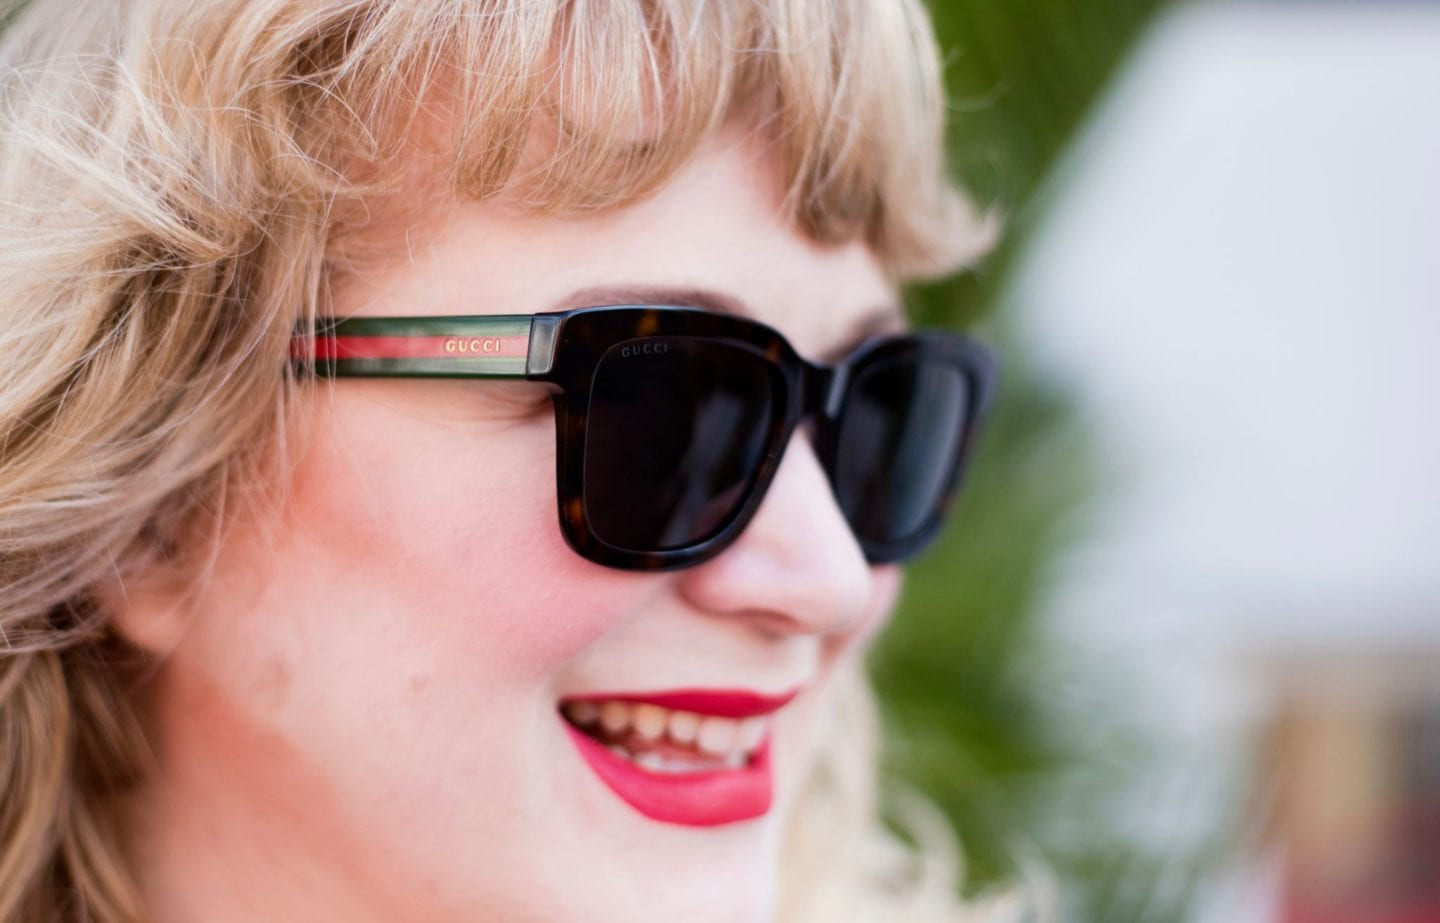 gucci sunglasses red and green classic shape